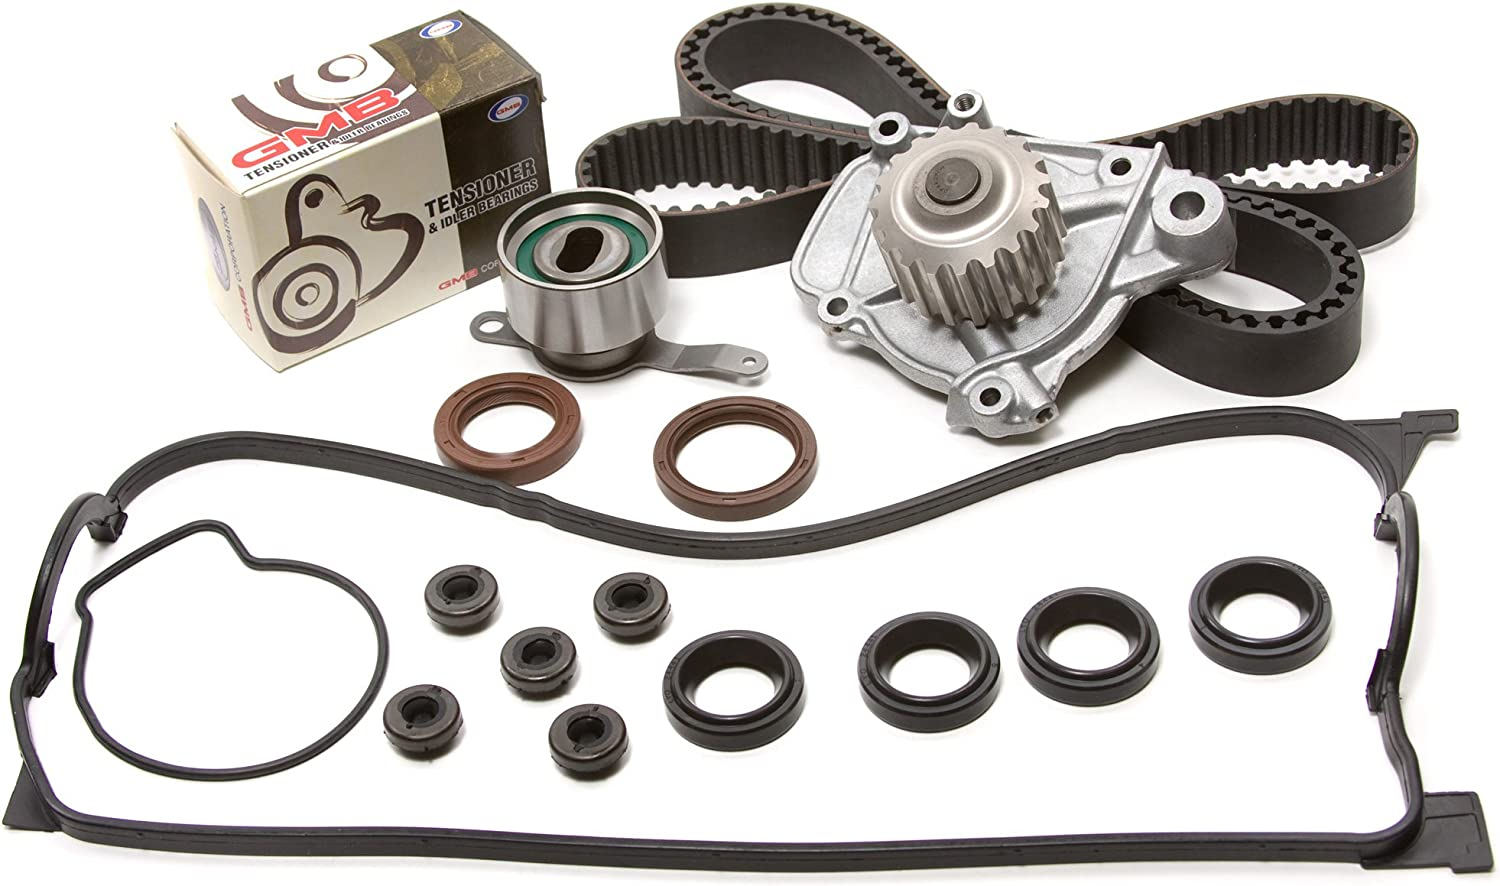 Evergreen TBK223VCT Fits 92-95 Honda Civic 1.5 D15Z1 Timing Belt Kit Valve Cover Gasket Water Pump